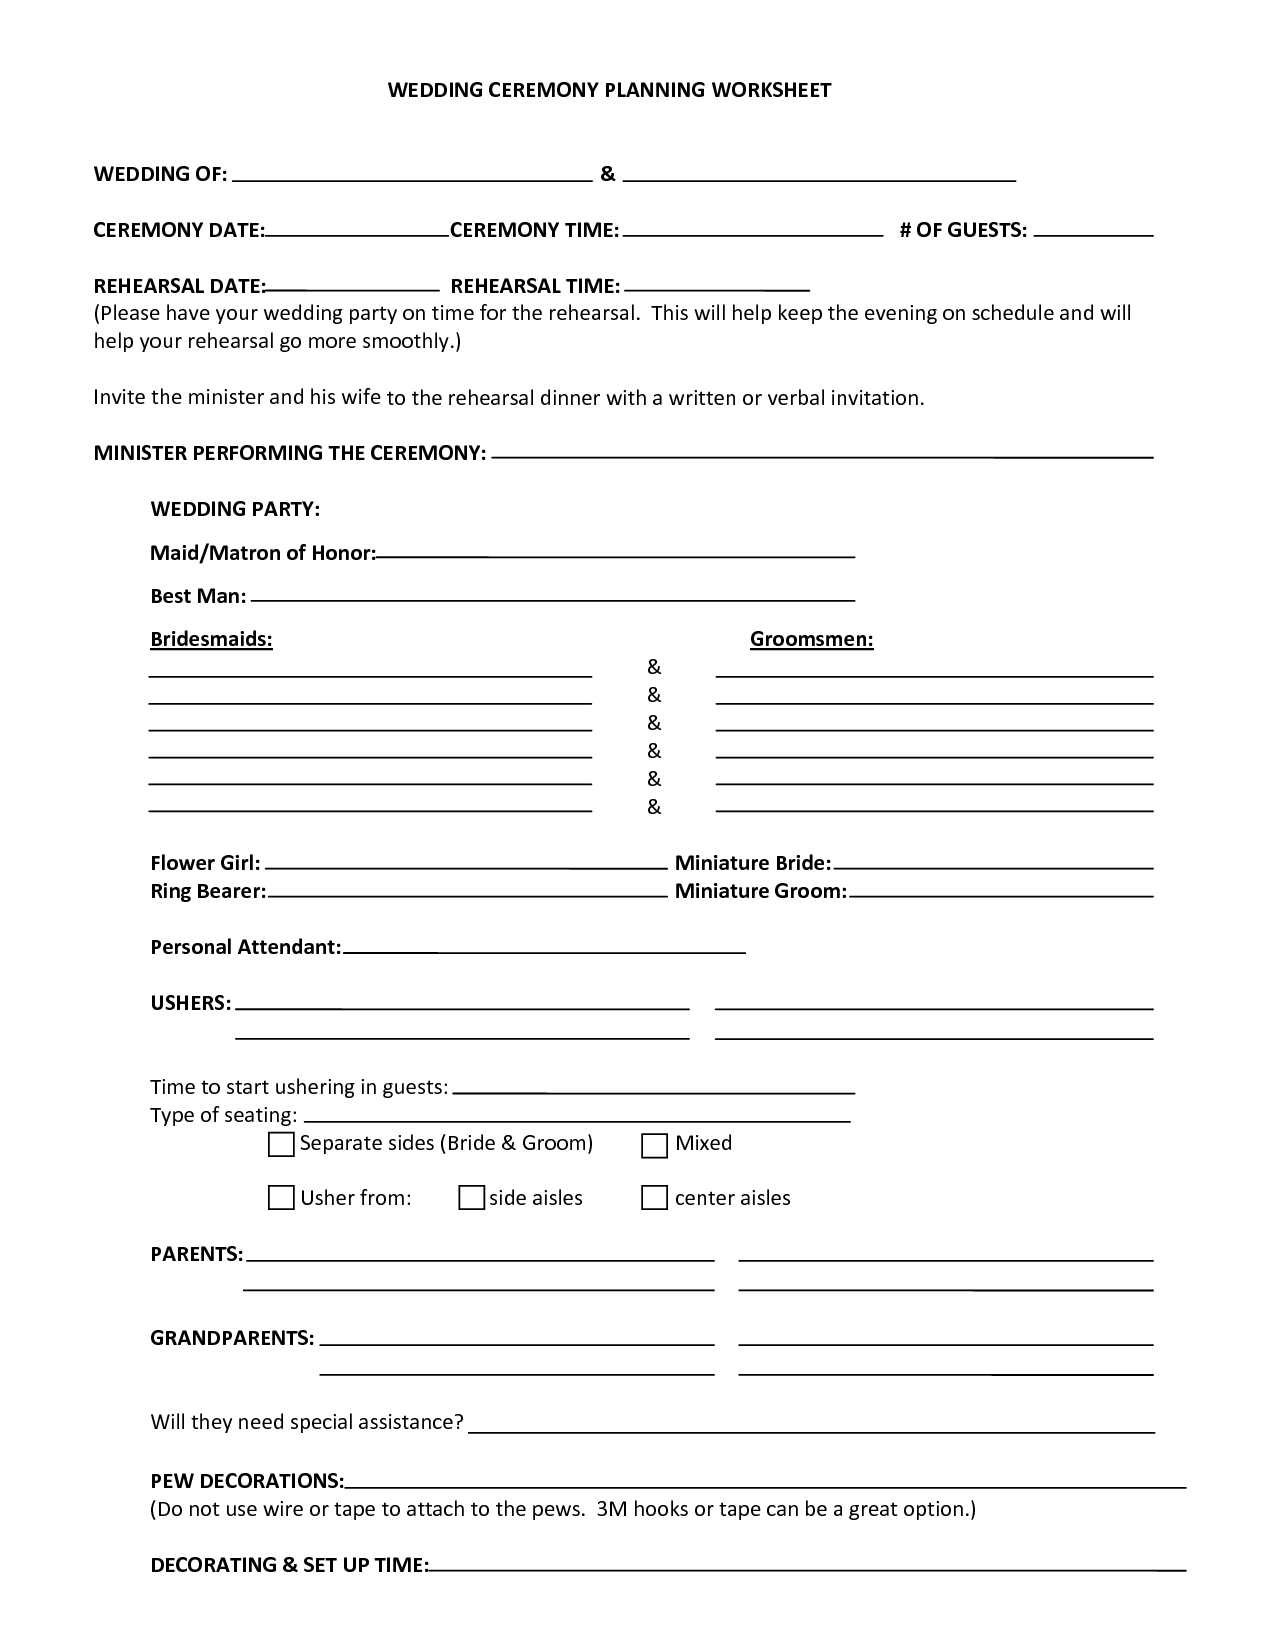 Wedding Ceremony Planning Worksheet Wedding Of